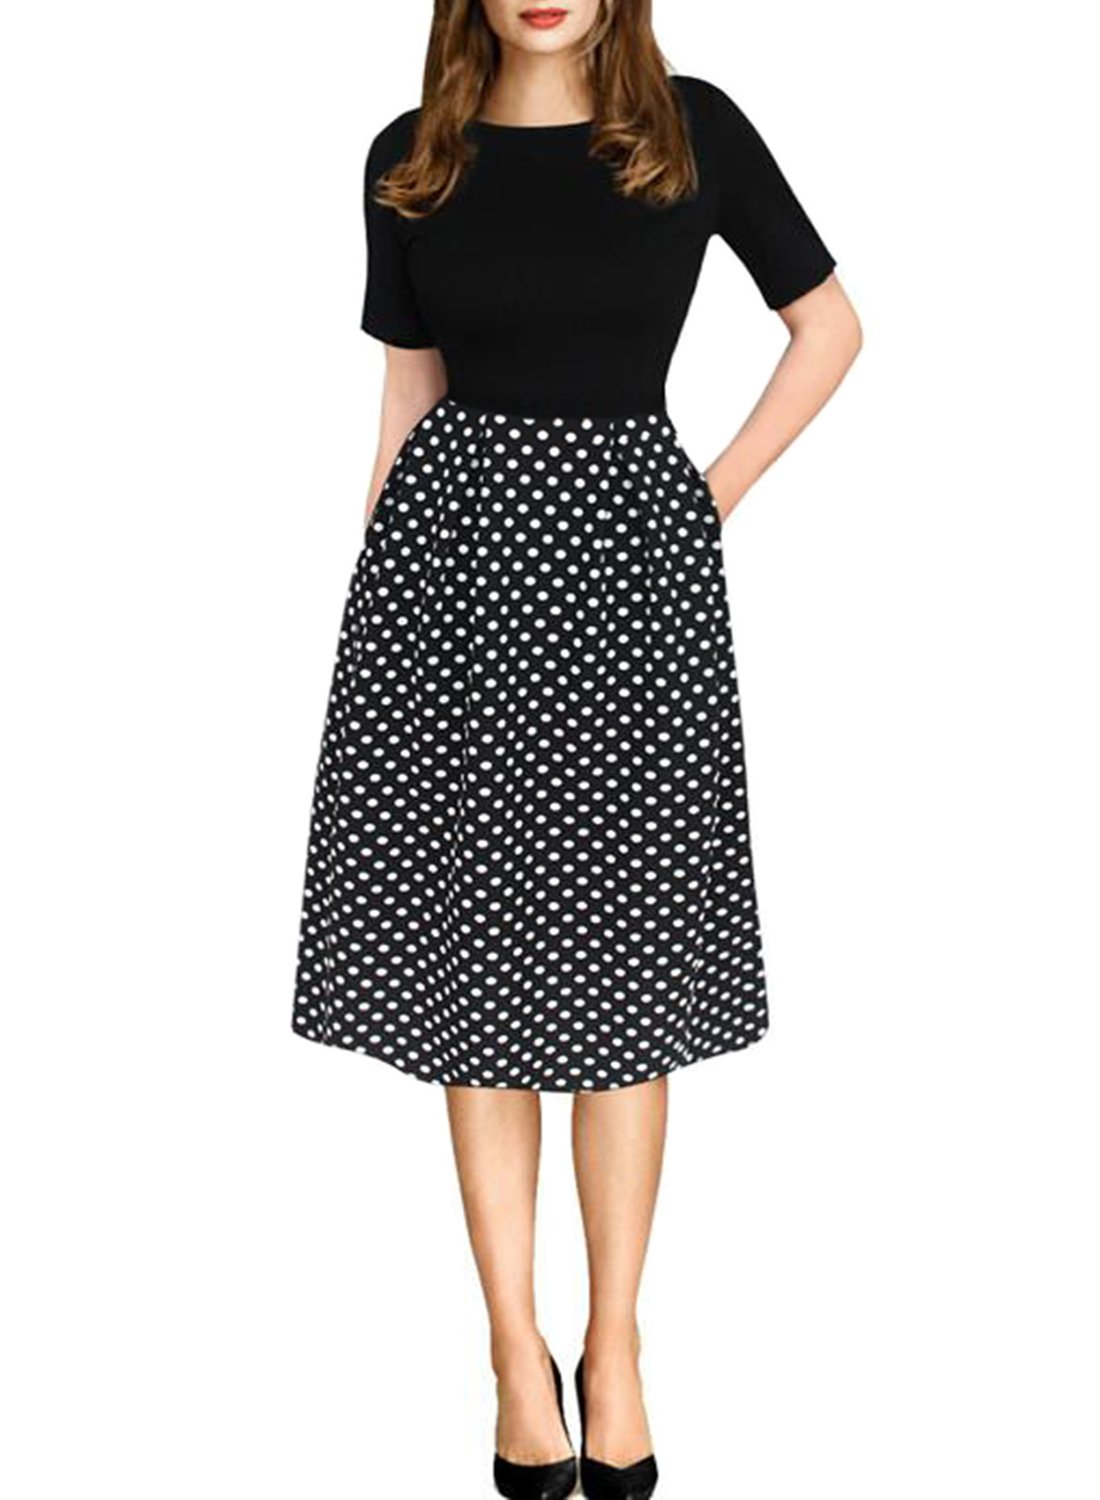 oxiuly Women's Vintage Black Dot Patchwork Pocket Puffy Swing Casual Dress OX165 (L, Black) by oxiuly